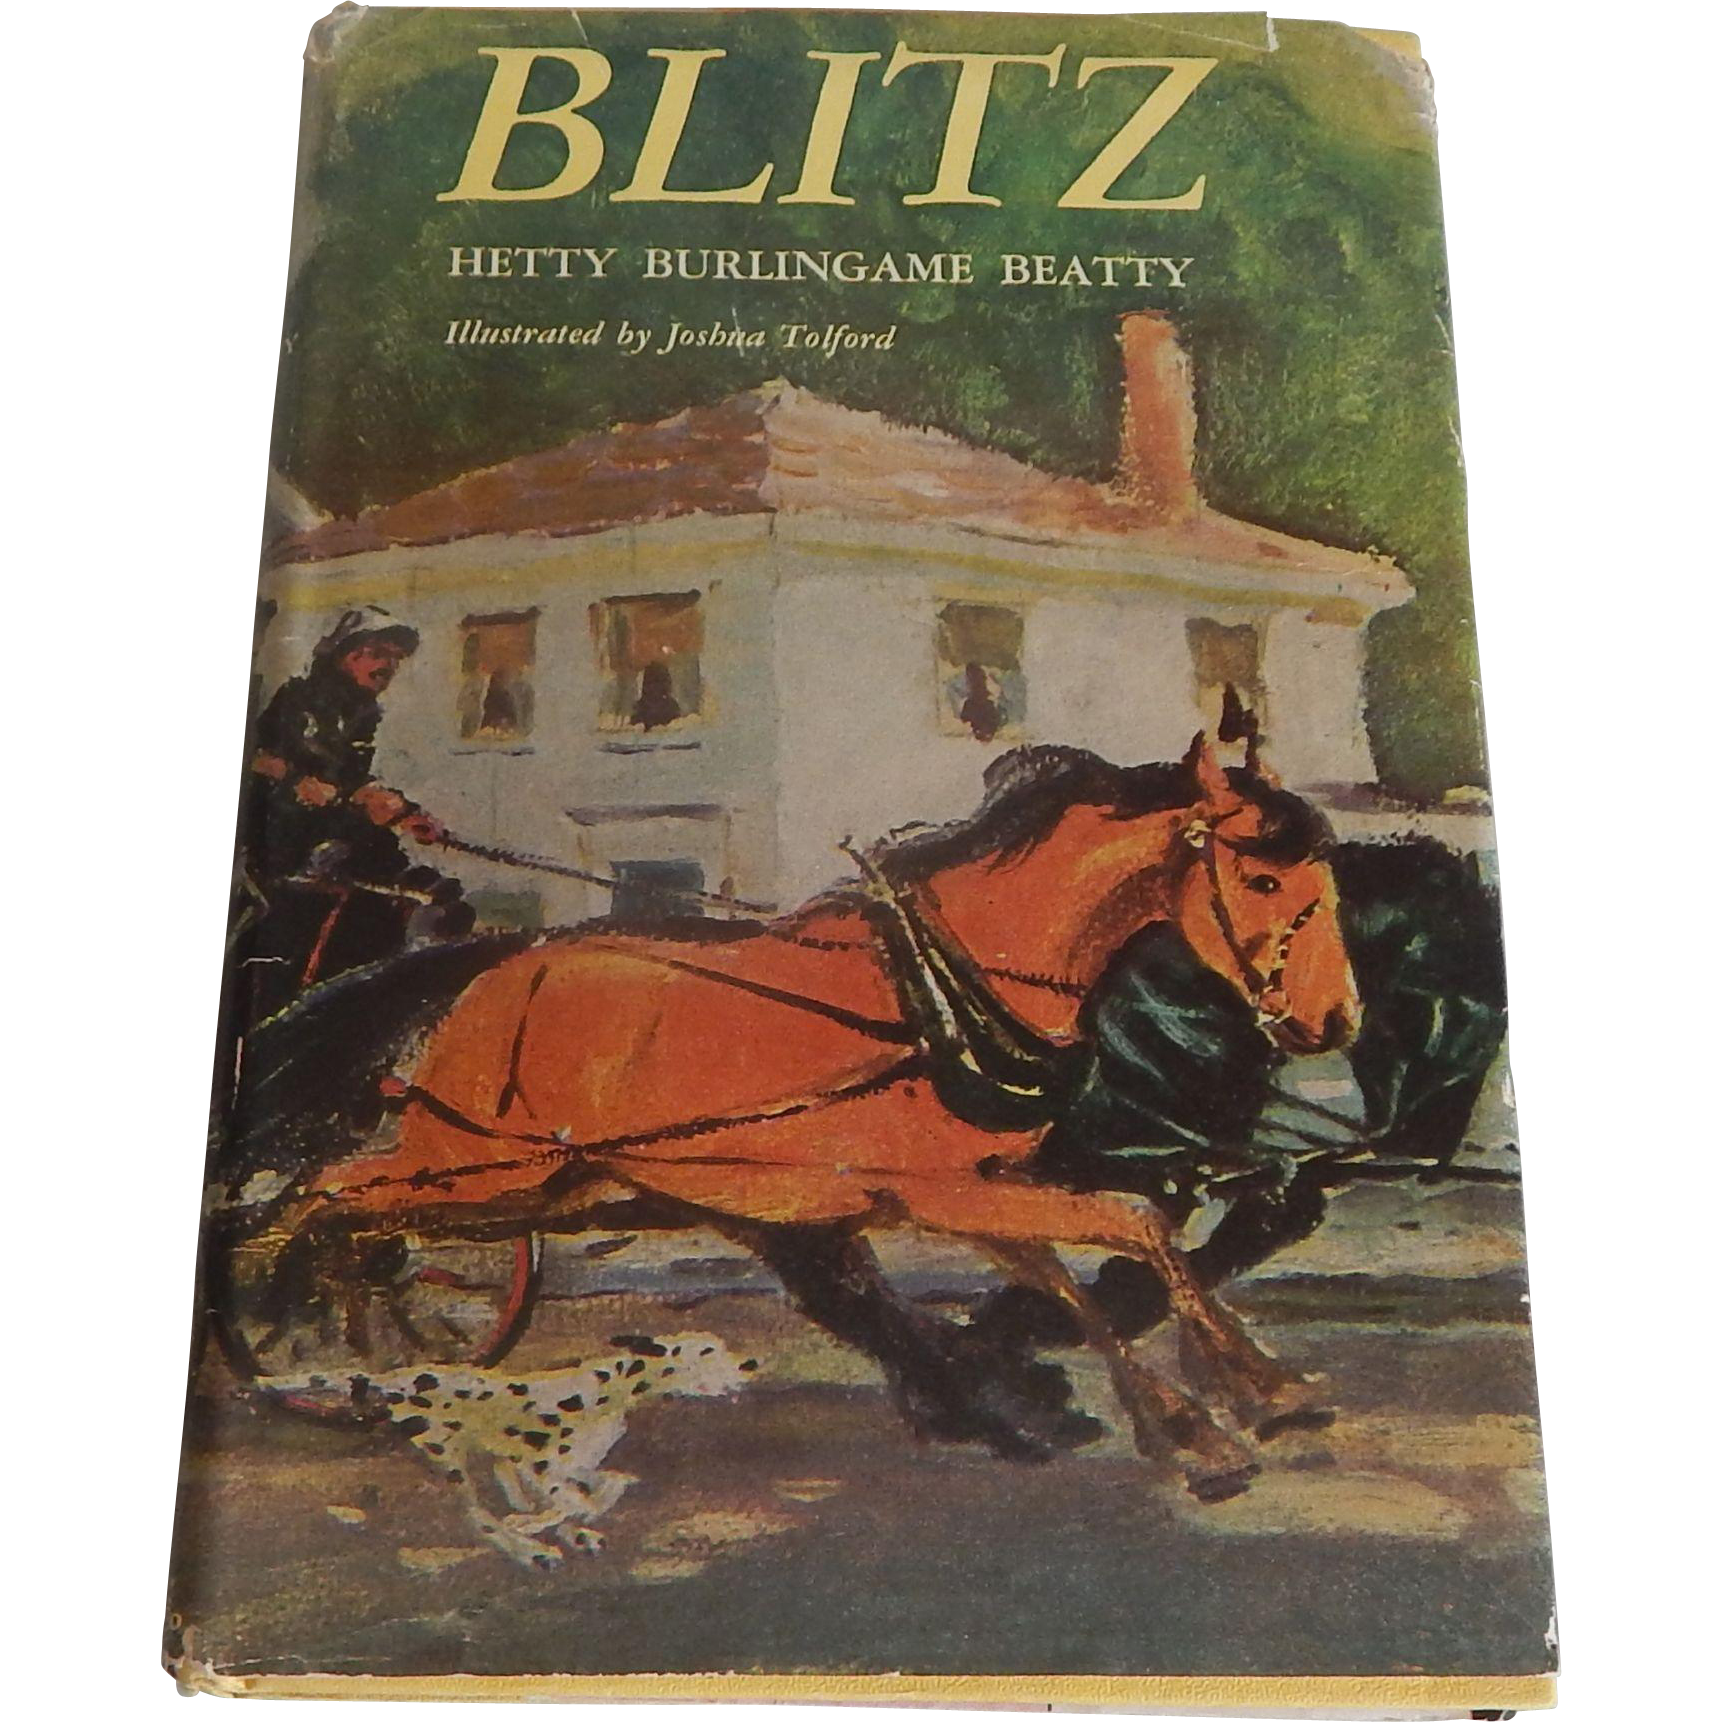 Blitz by Hetty Burlingame Beatty   Horse Story